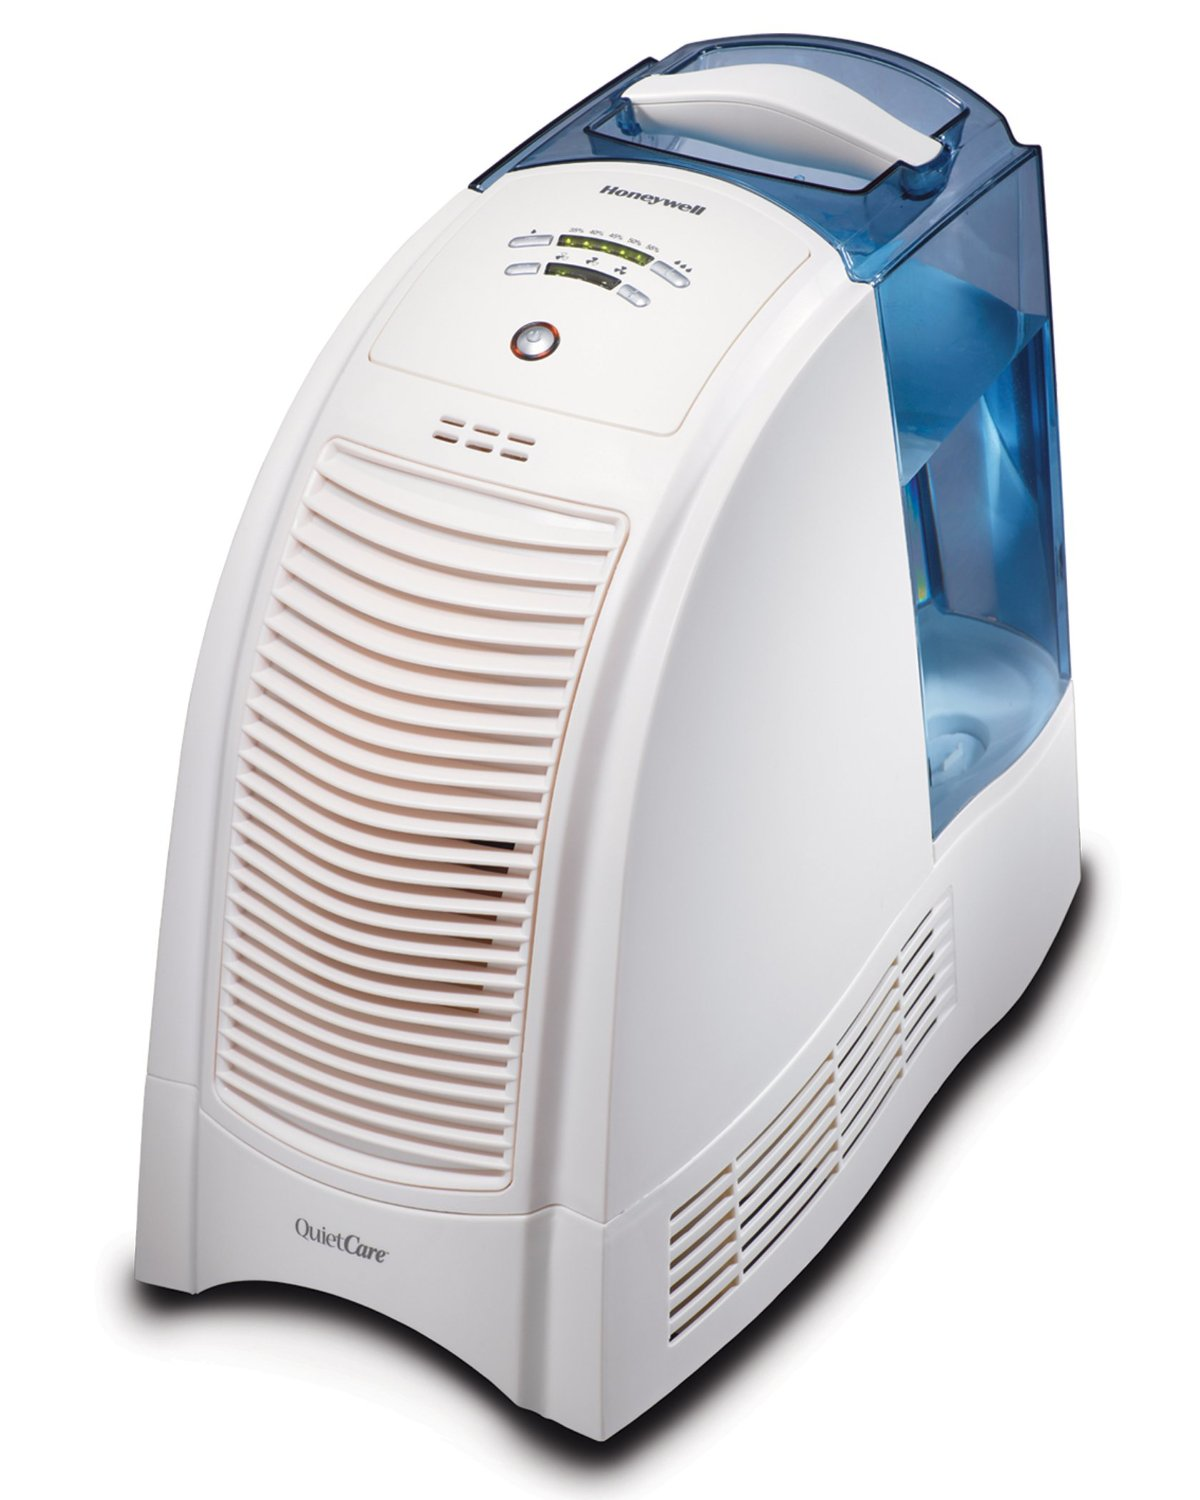 Honeywell 4 Gallon Cool Mist Humidifier, HCM-645